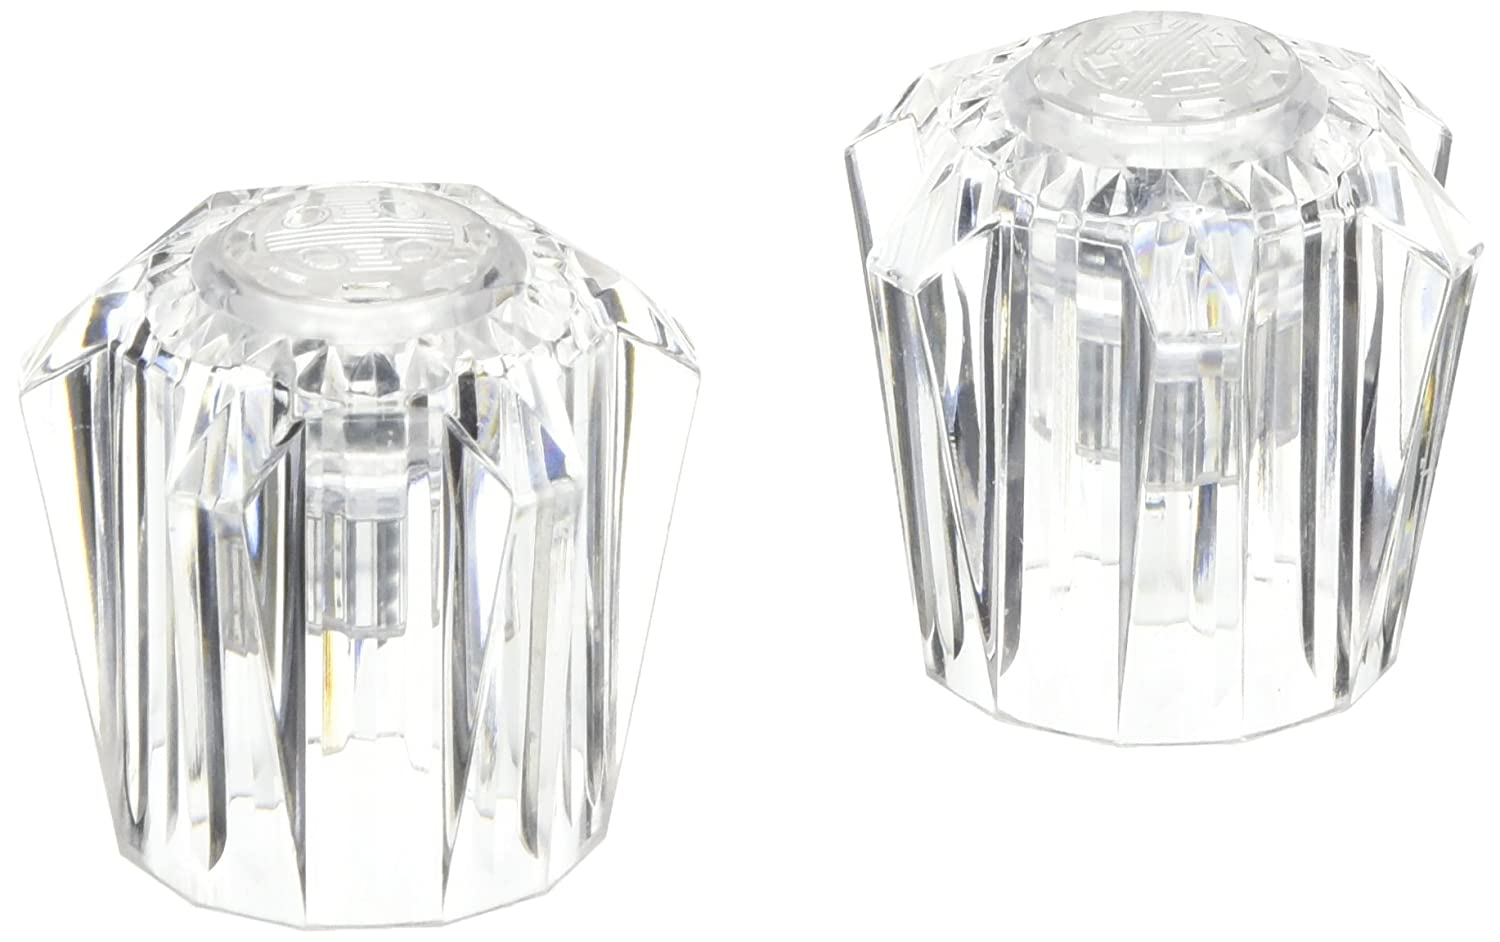 Pack of 2 W10-1562 LaSalle Bristol 39015 Utopia Clear Standard Size Handle for Faucets,